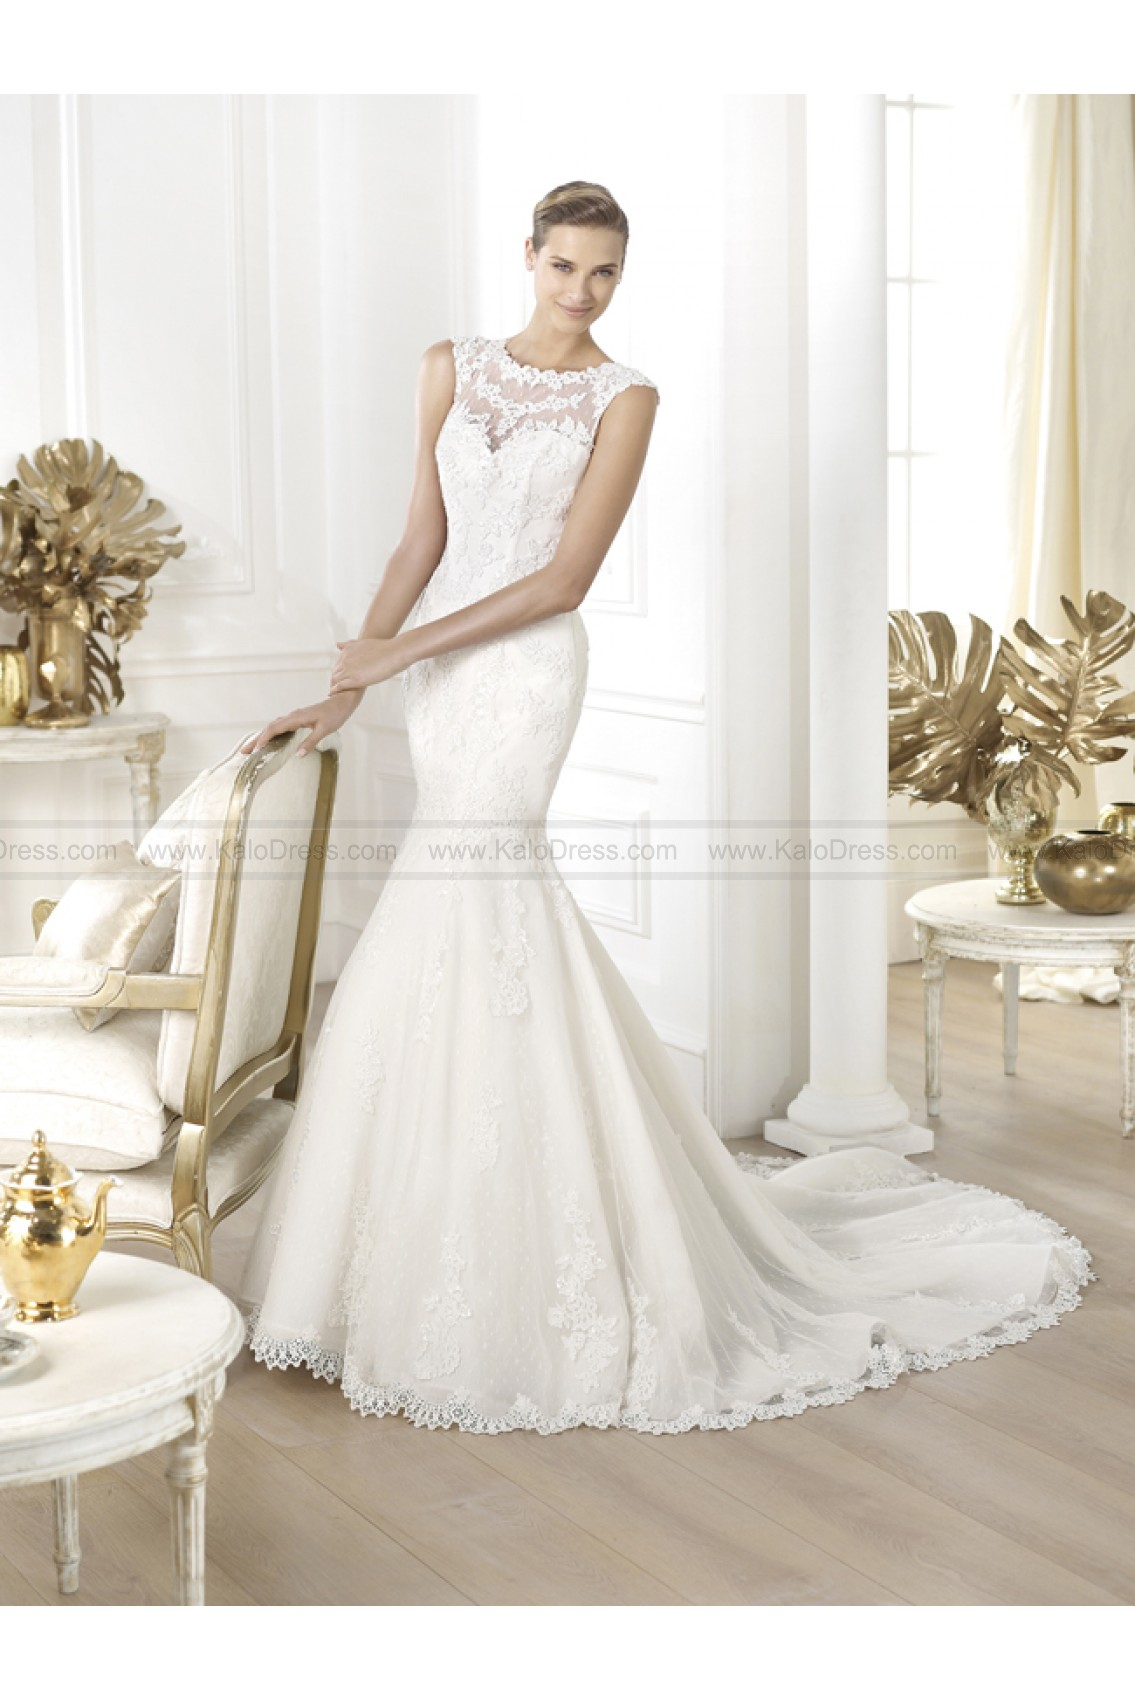 Pronovias Wedding Dresses - Style Landel - Wedding Dresses 2014 New - Formal Wedding Dresses